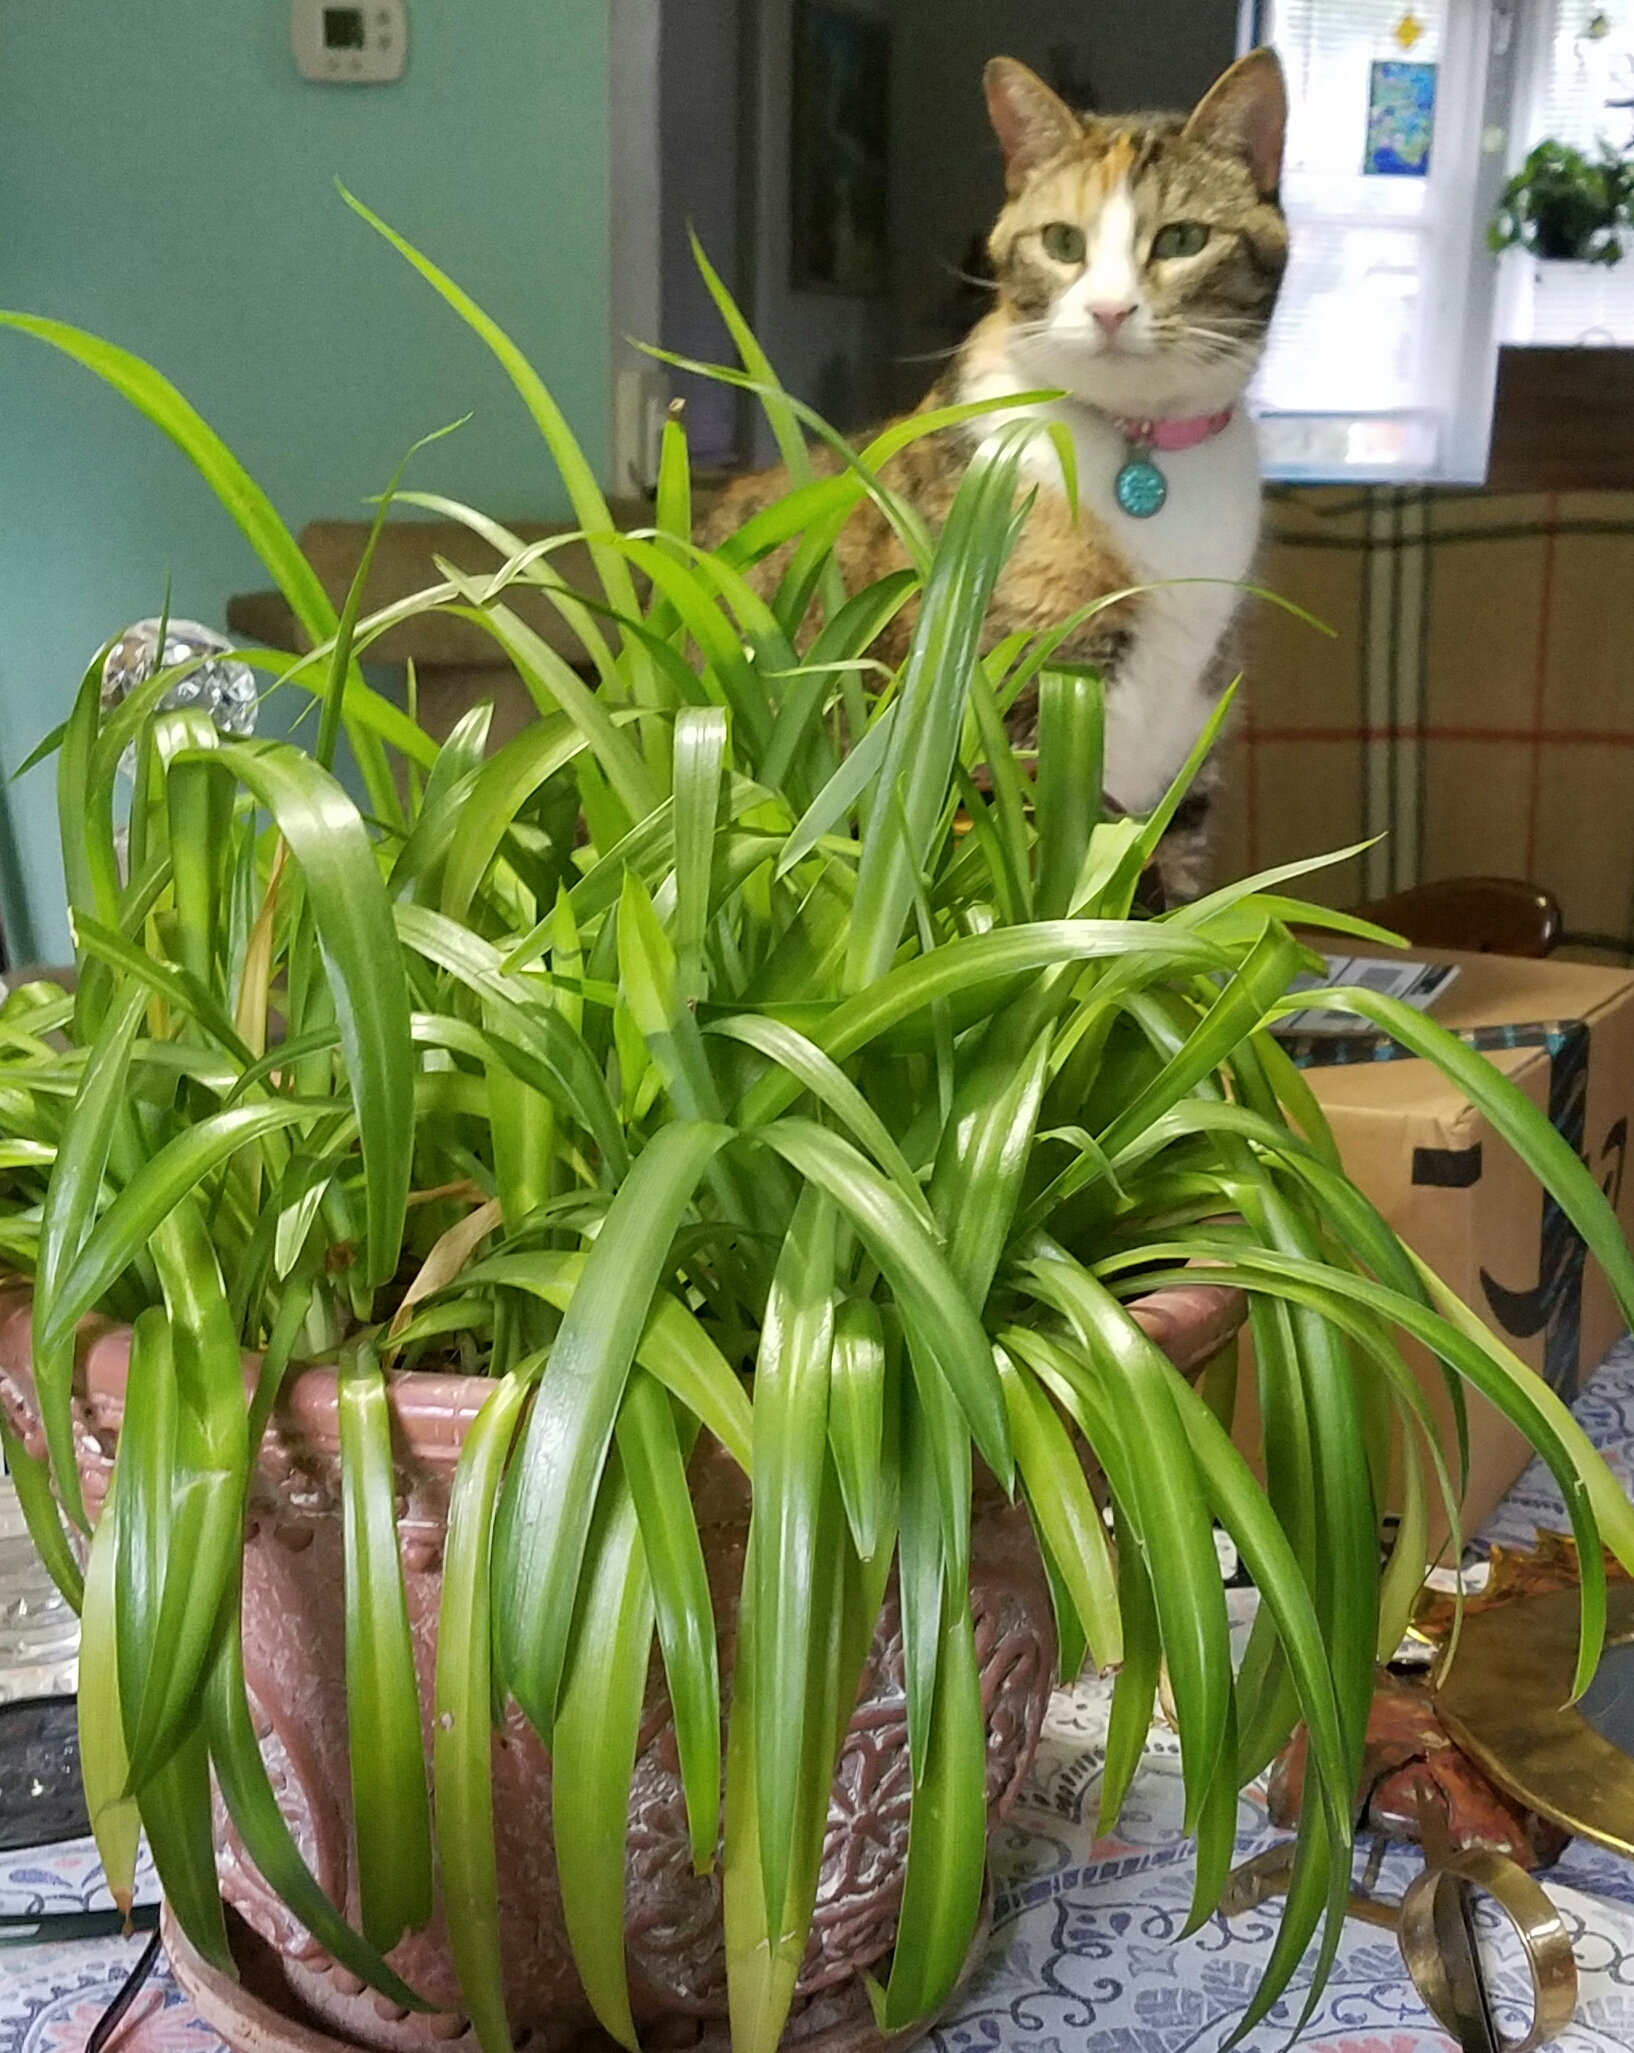 Green eyed girl daily feline wisdom for Are spider plants poisonous to cats